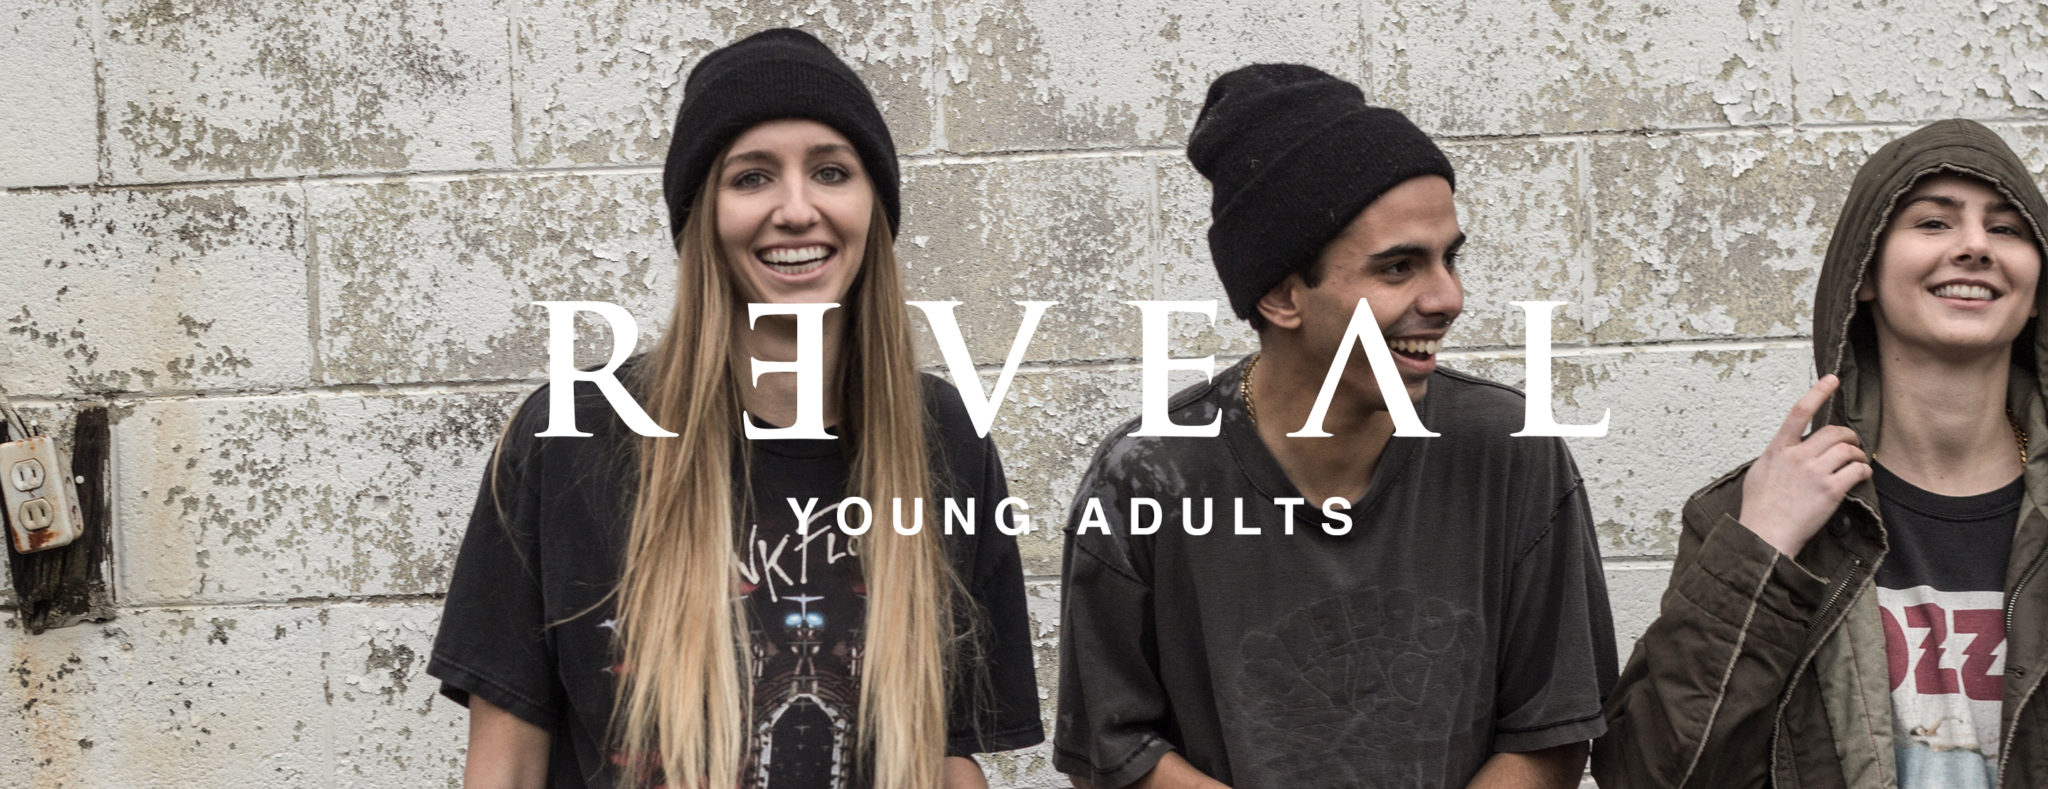 Reveal - young adults